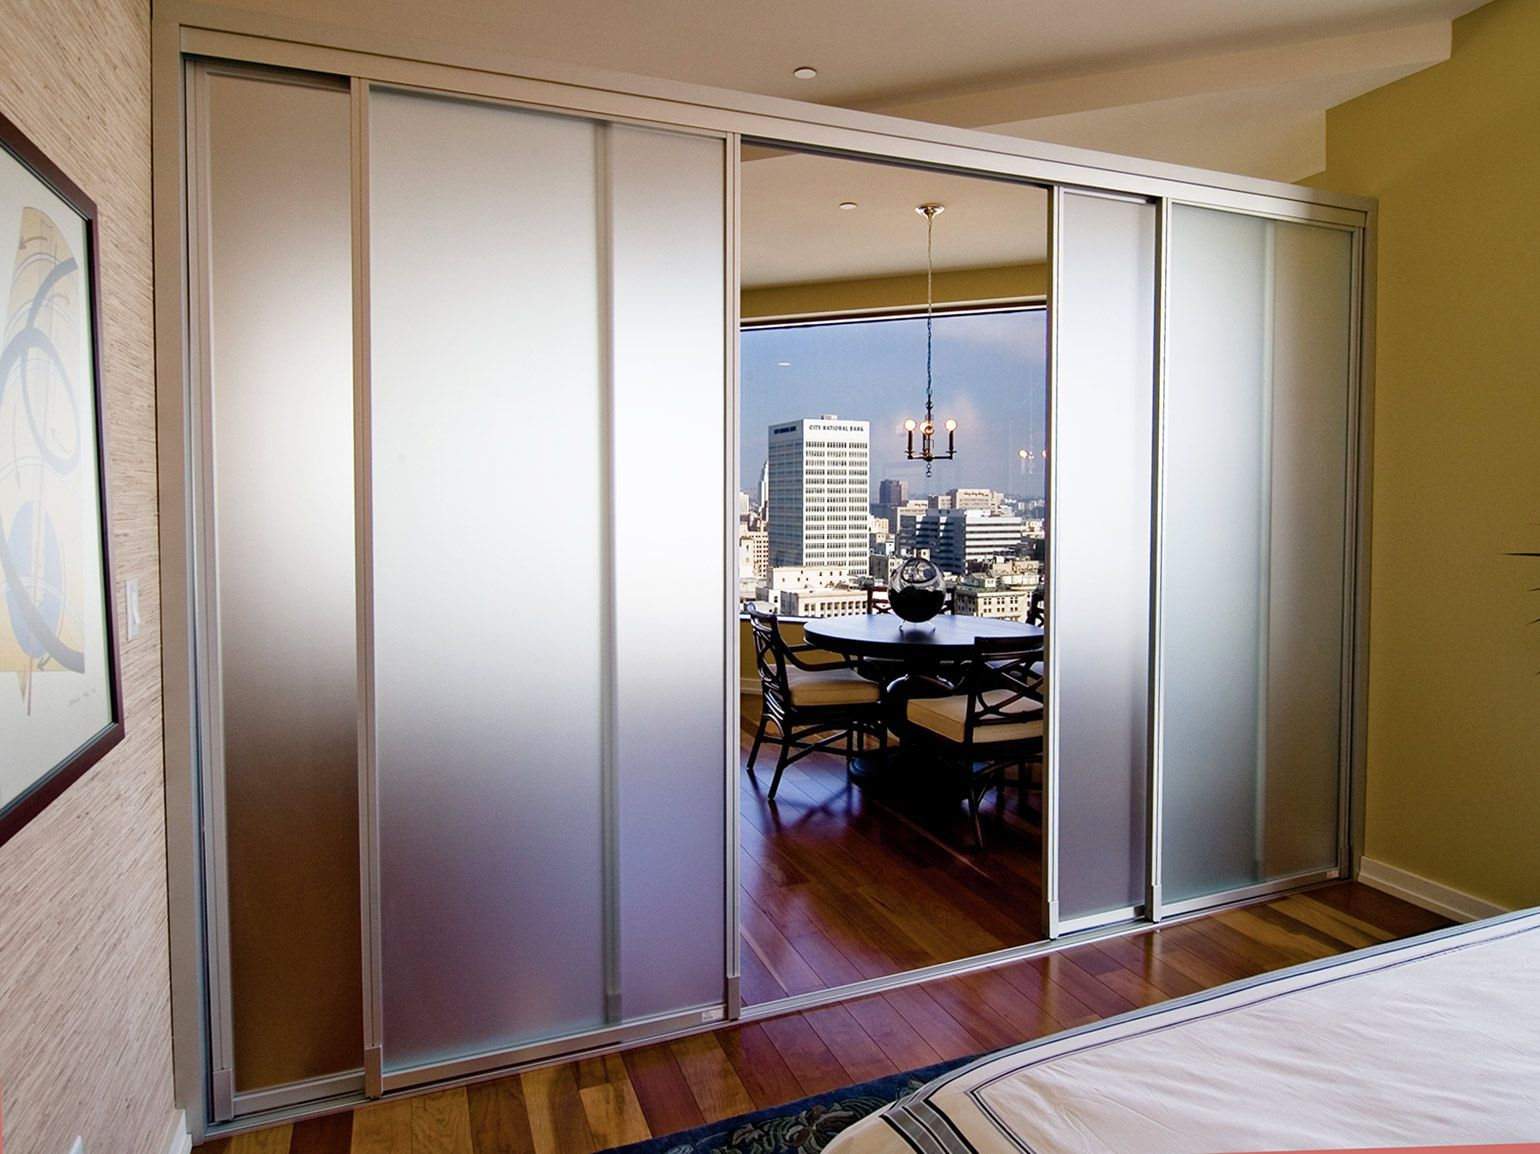 Room Divider Kast : 10 industrious cool ideas: room divider metal projects room